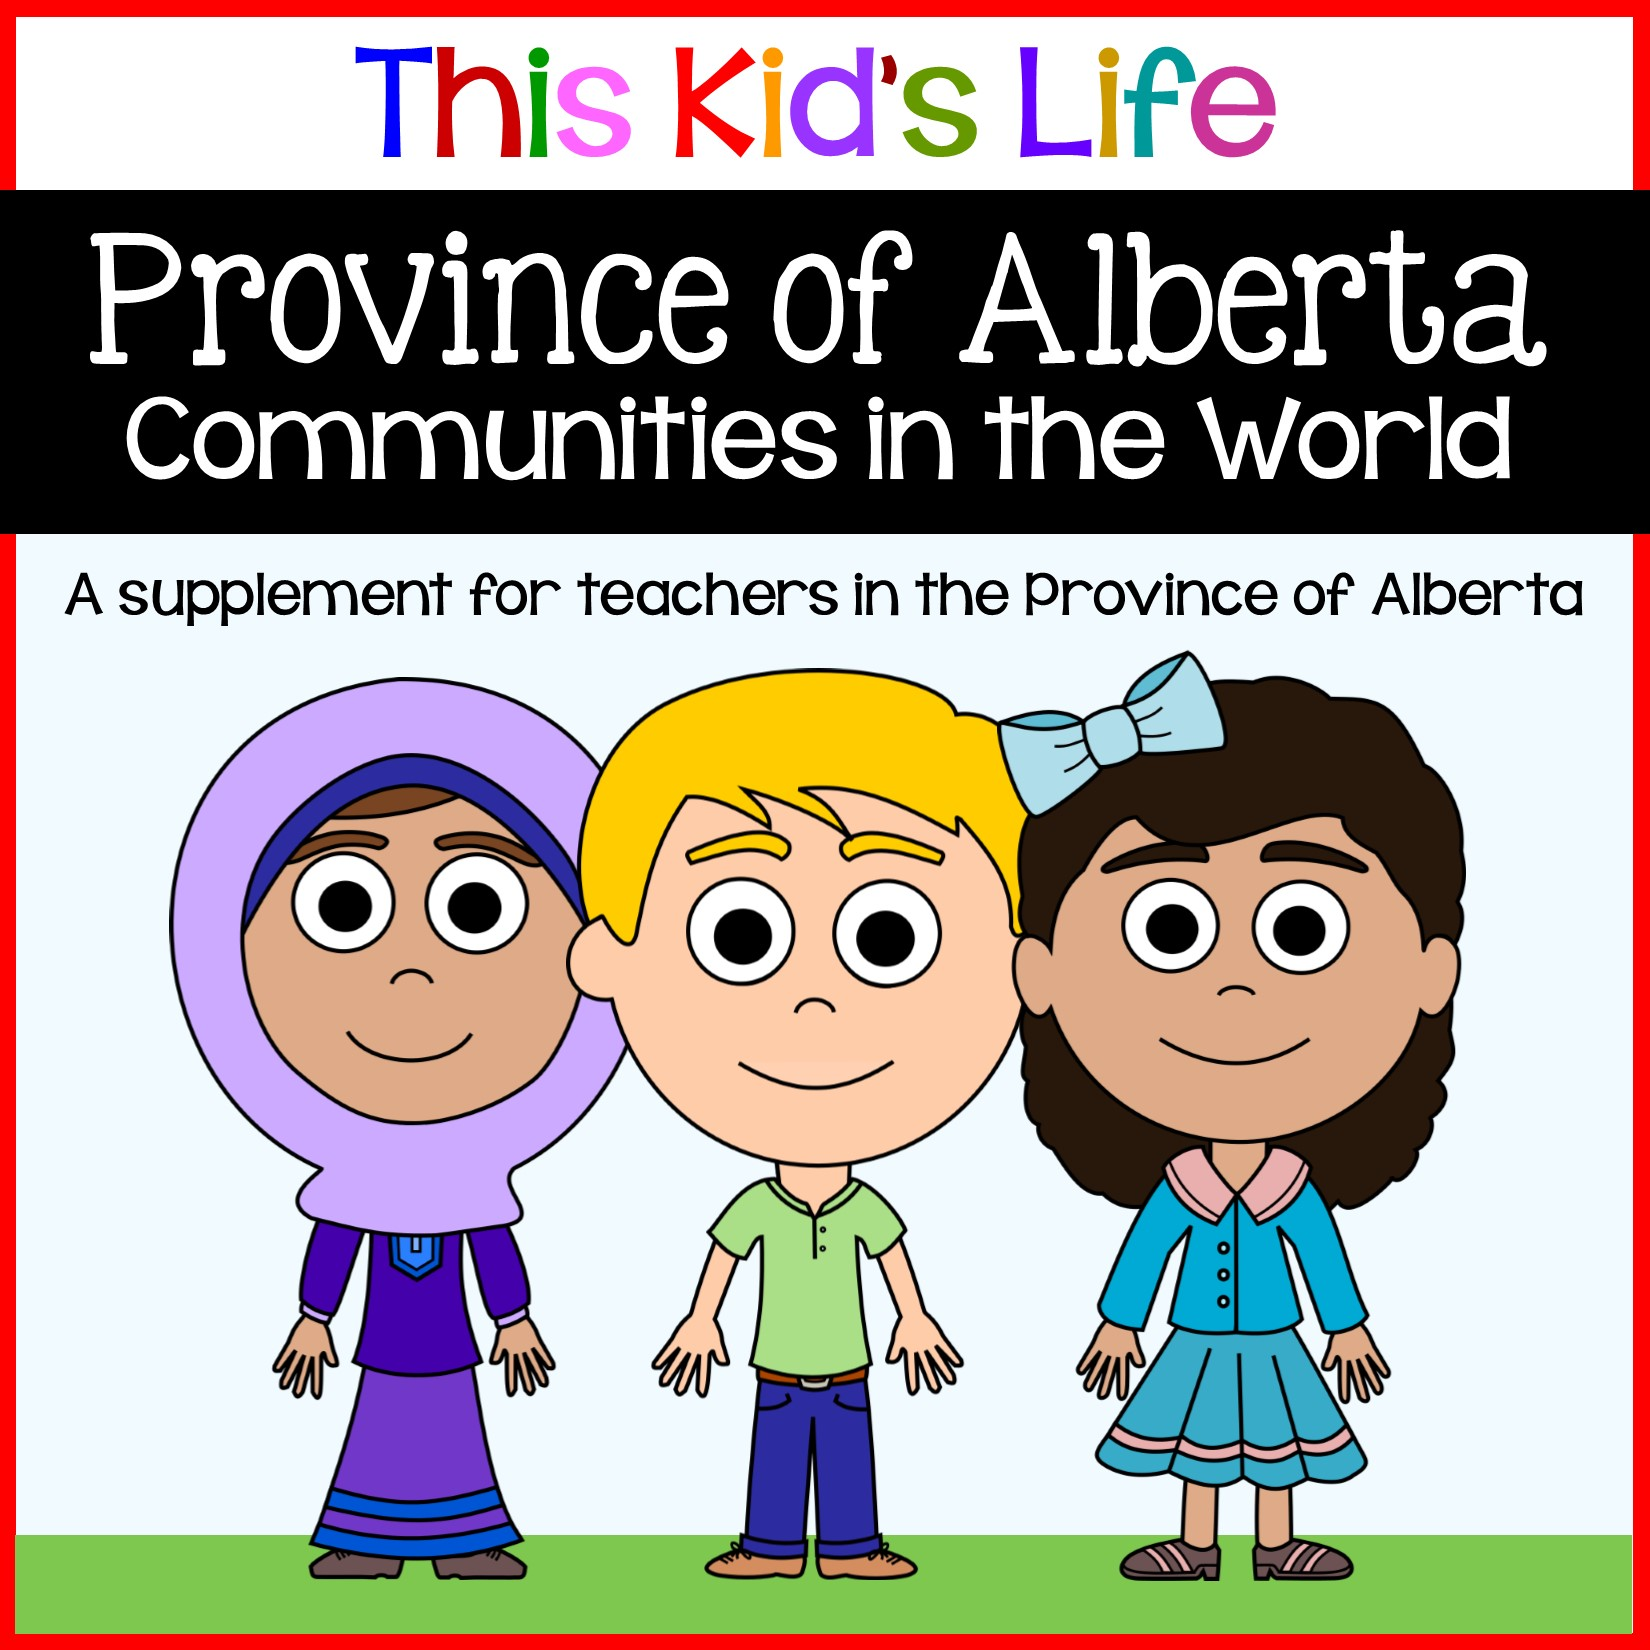 Alberta Communities in the World